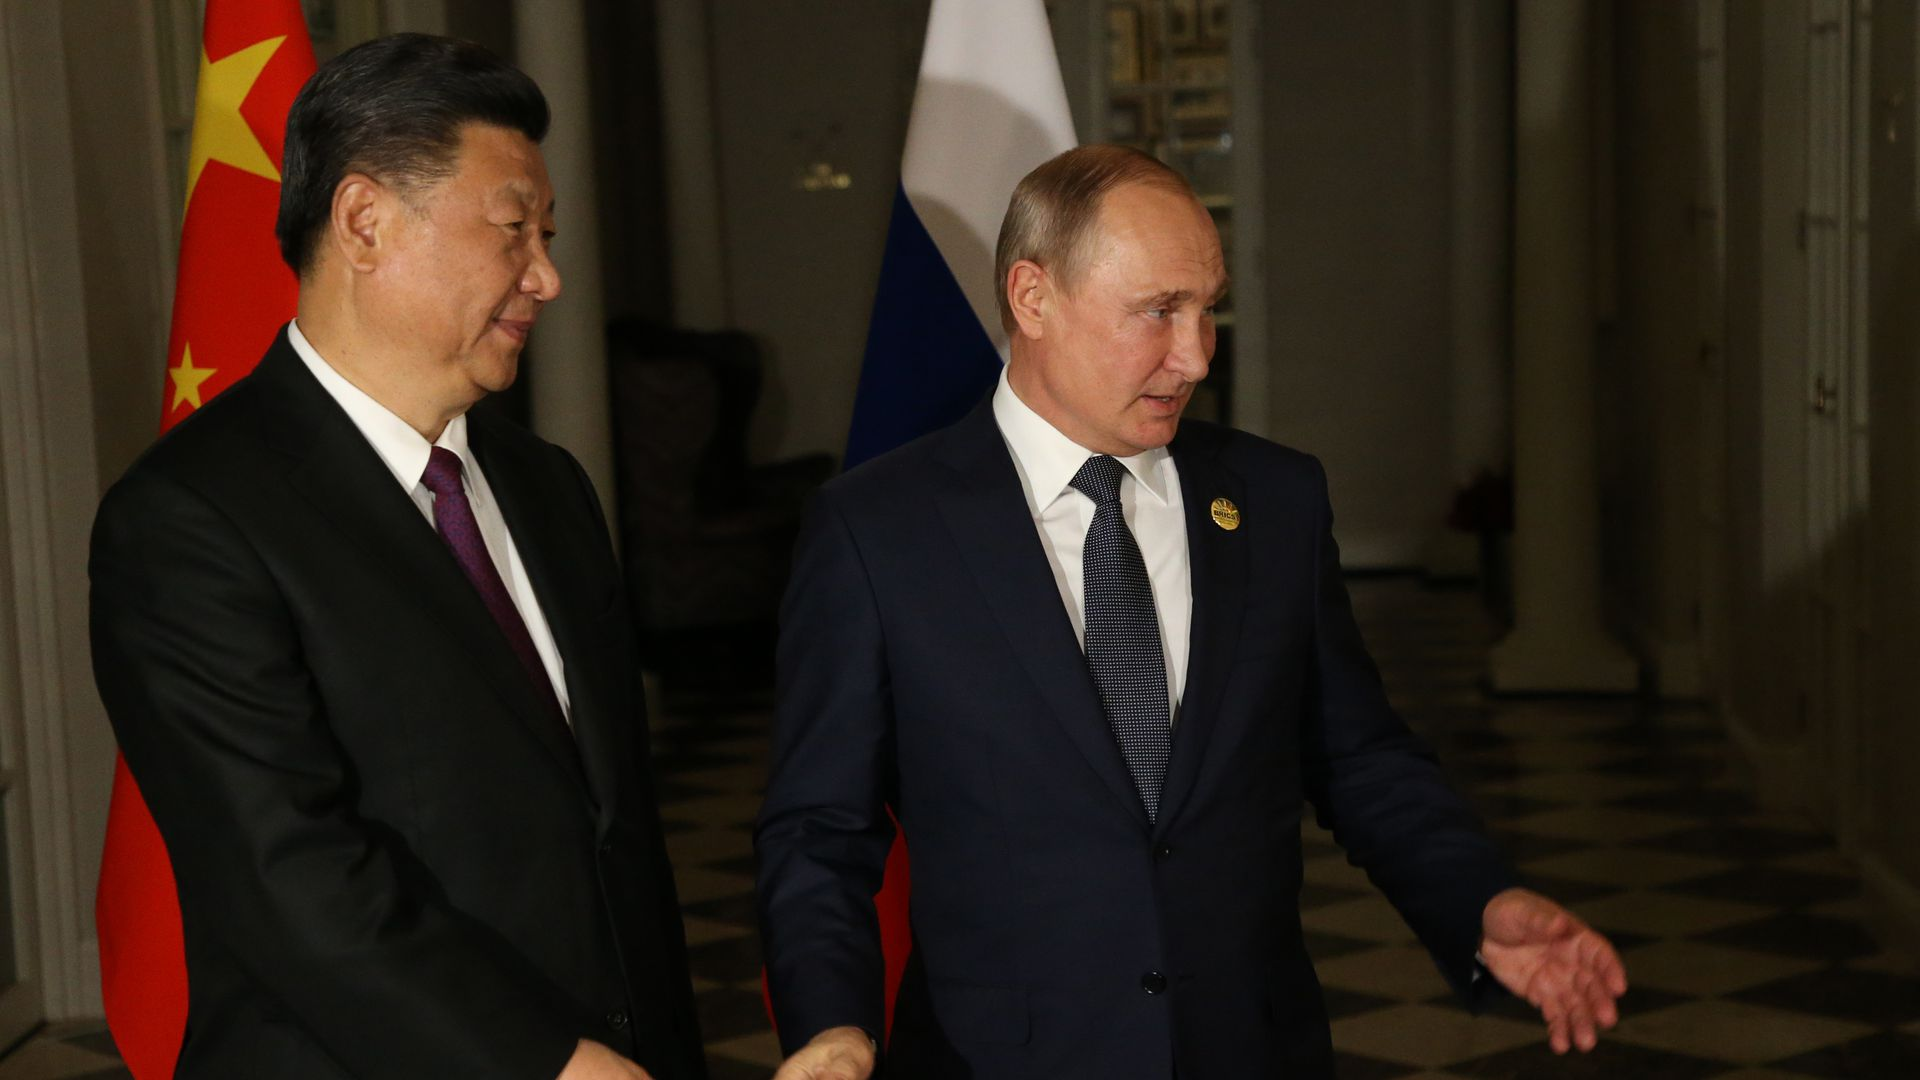 Chinese president Xi Jinping stands next to Russian president Vladimir Putin in front of both countries' flags